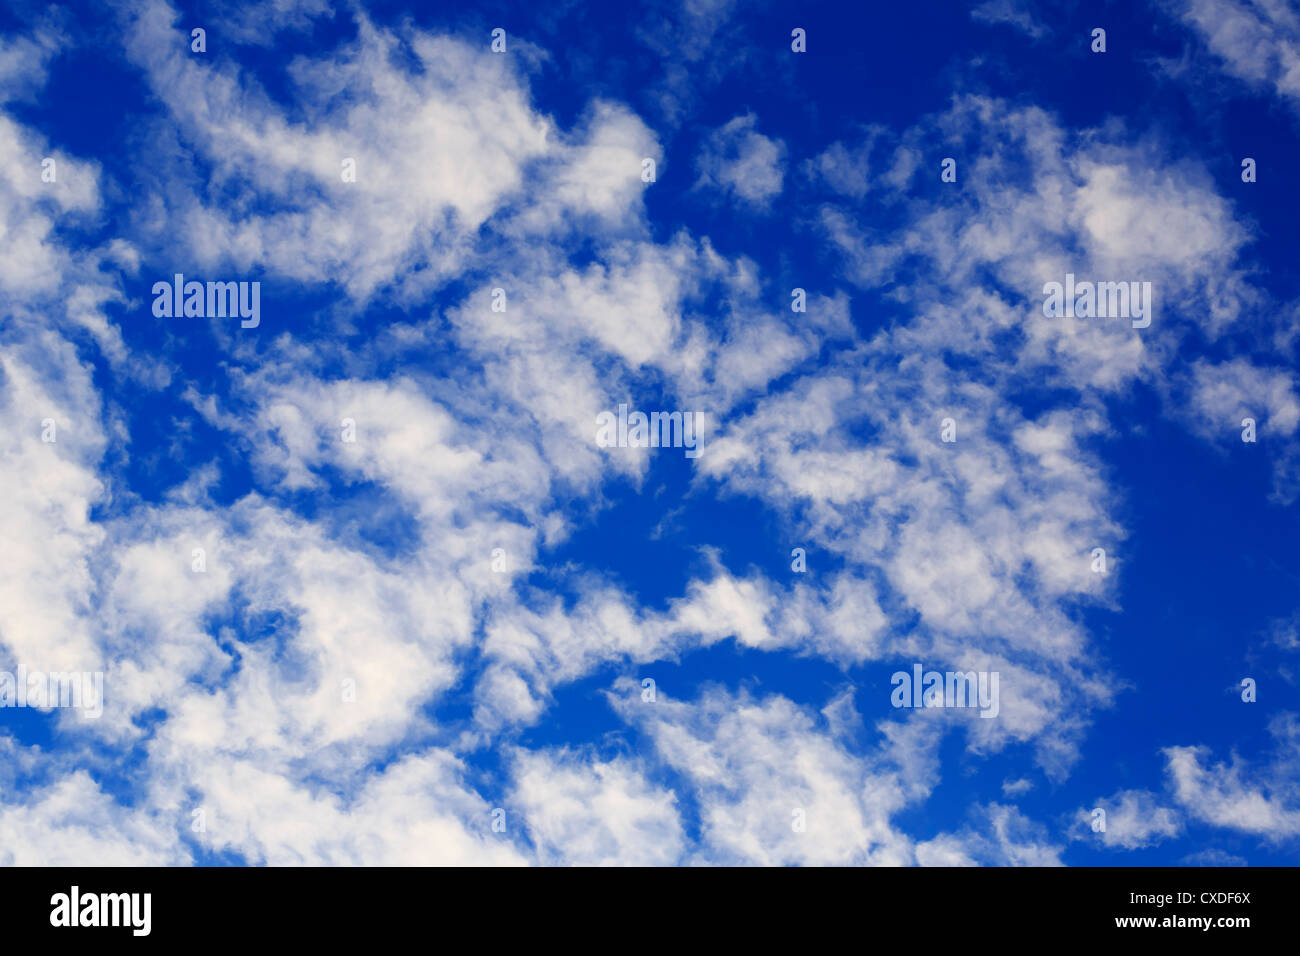 Scattered clouds directly overhead. - Stock Image